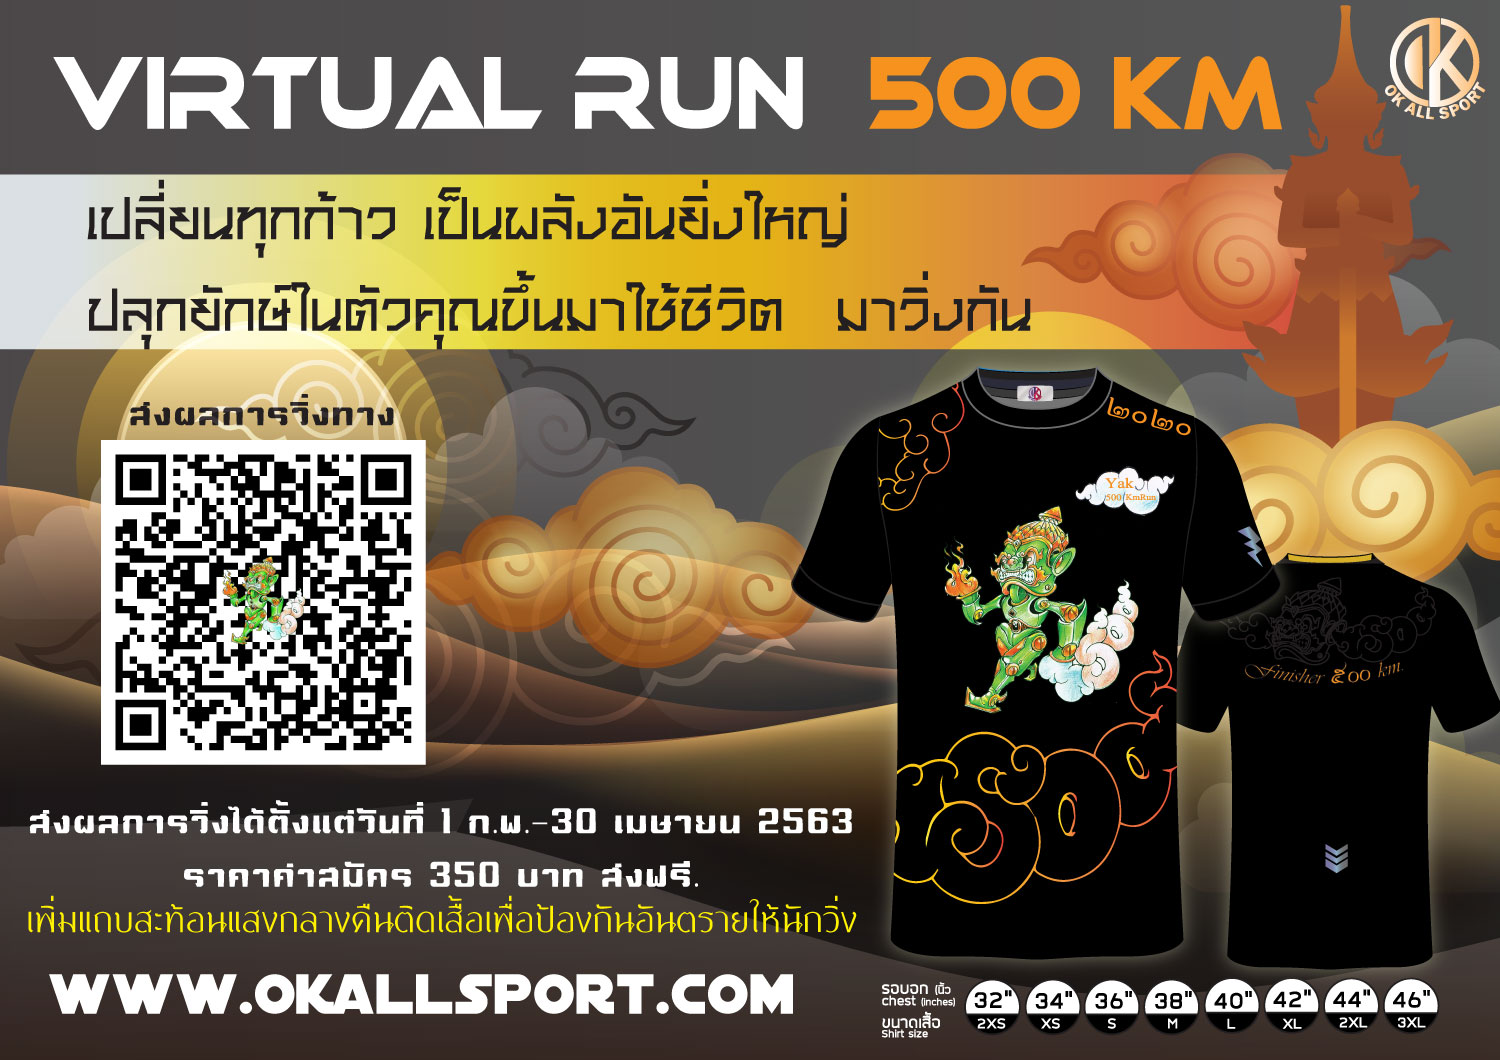 Virtual Run  500 km